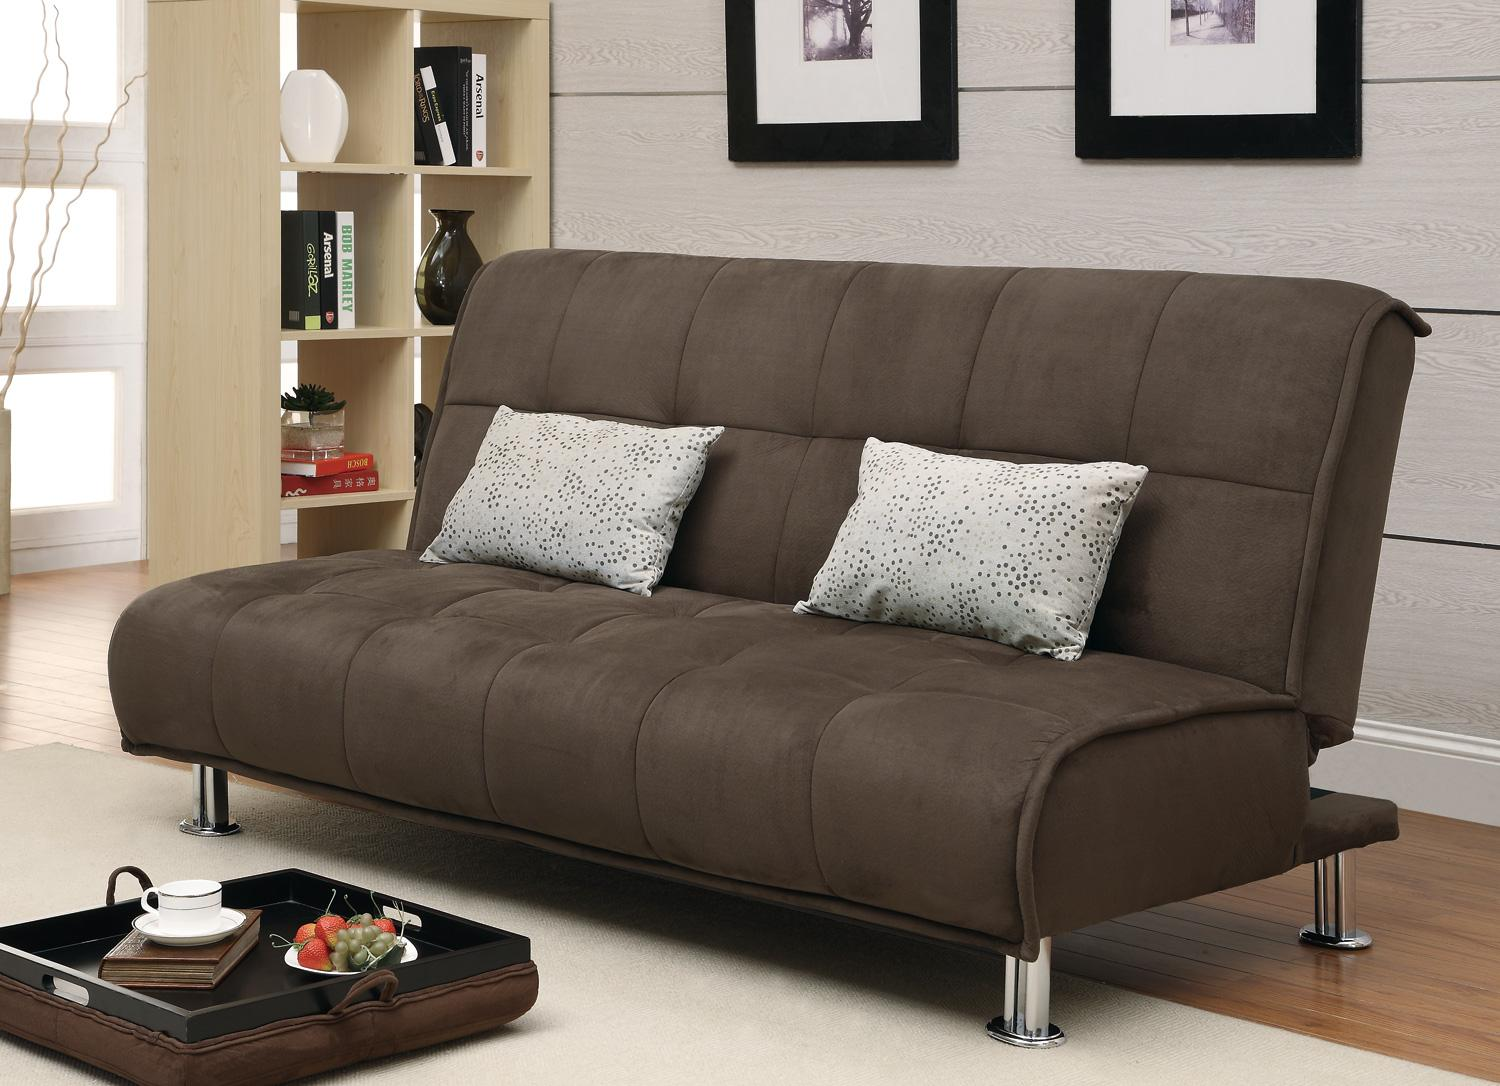 sleeper futon curved of image choosing sofa